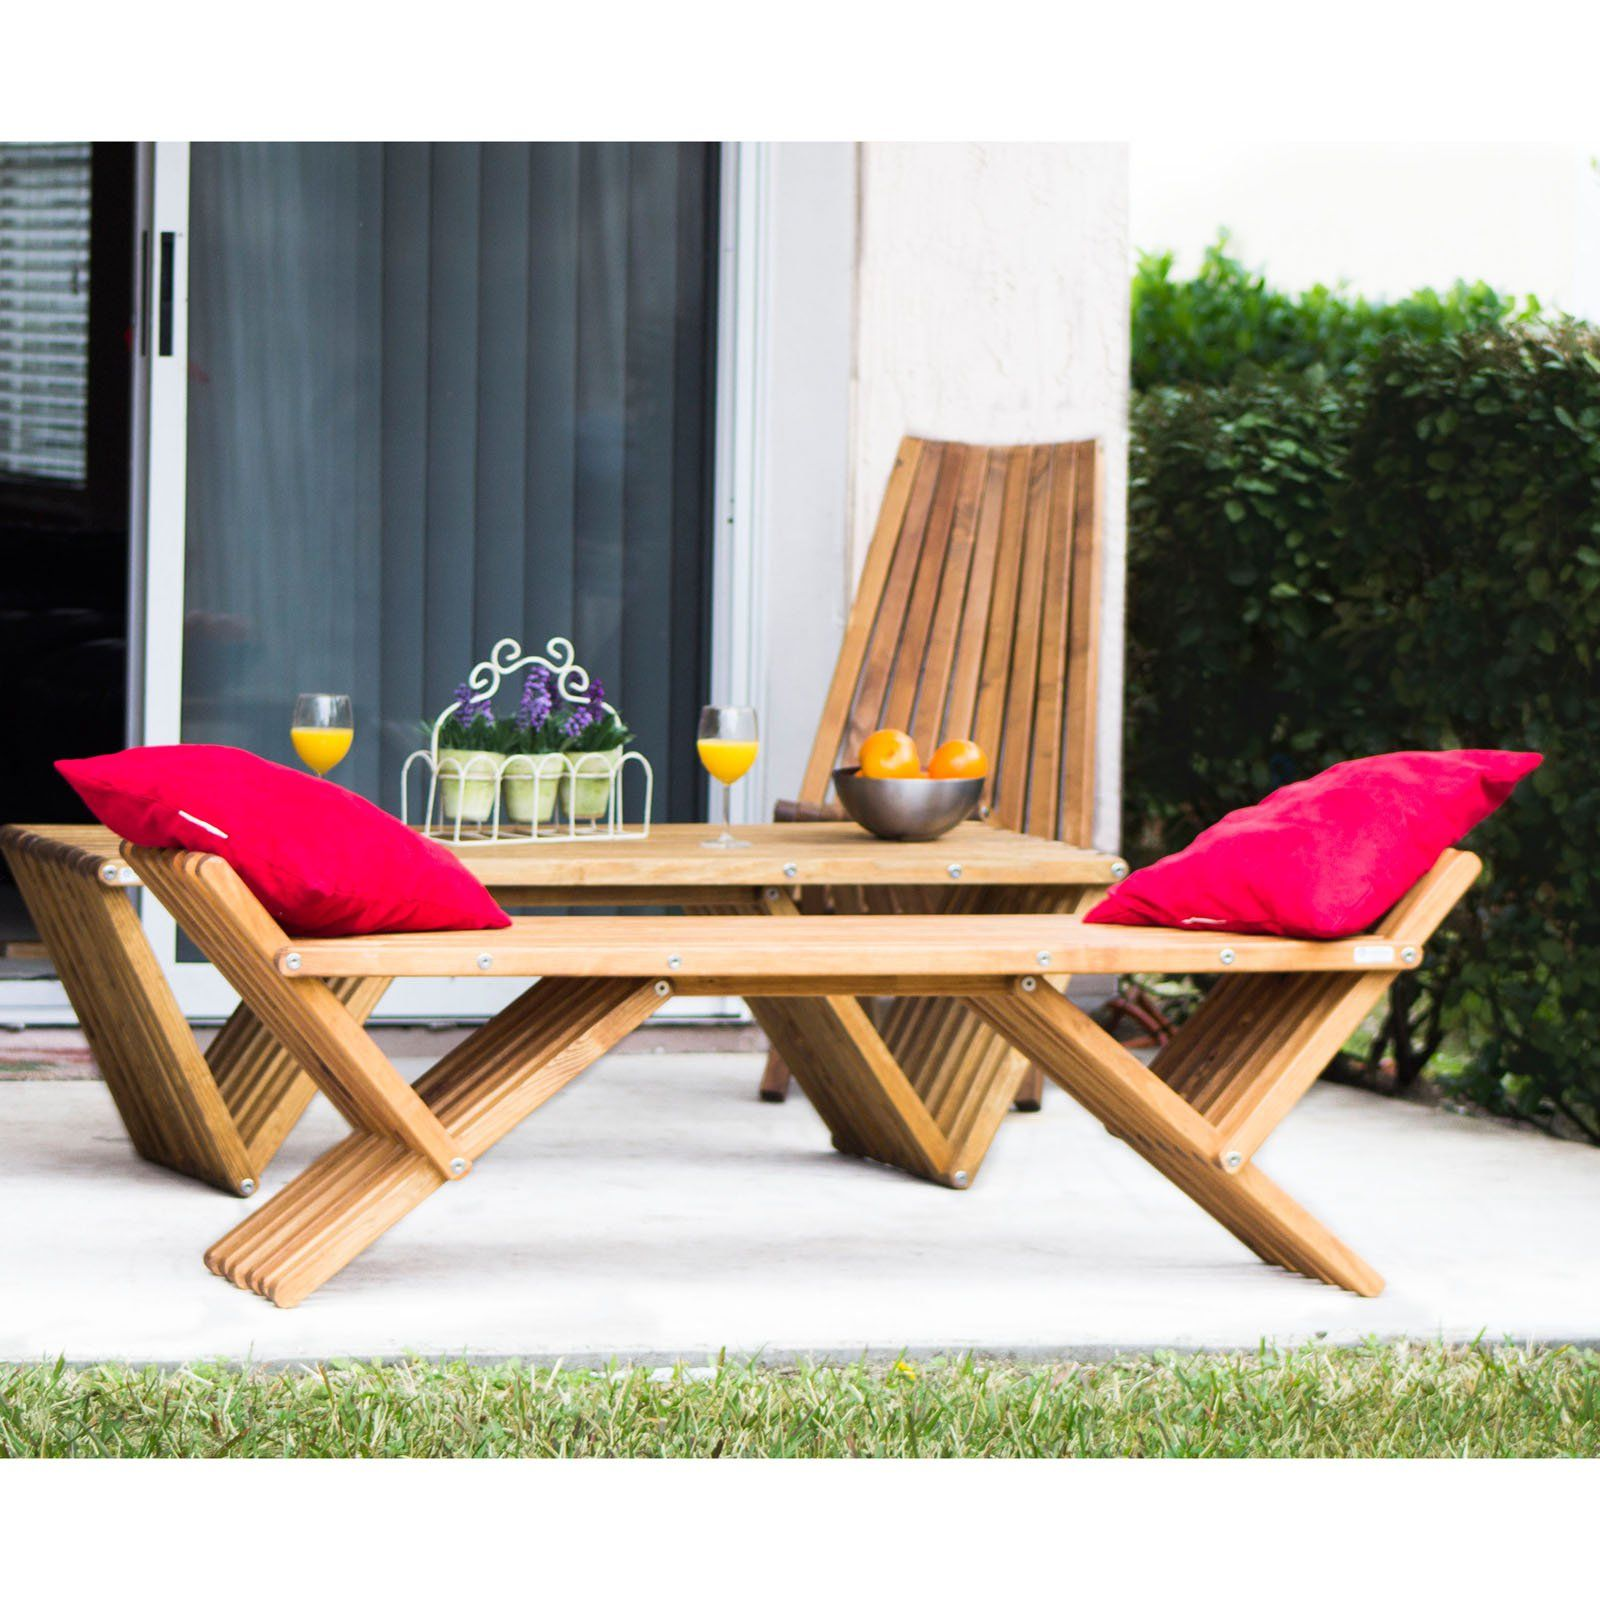 Awe Inspiring Outdoor Glodea Xquare French X90 Wooden Backless Garden Dailytribune Chair Design For Home Dailytribuneorg